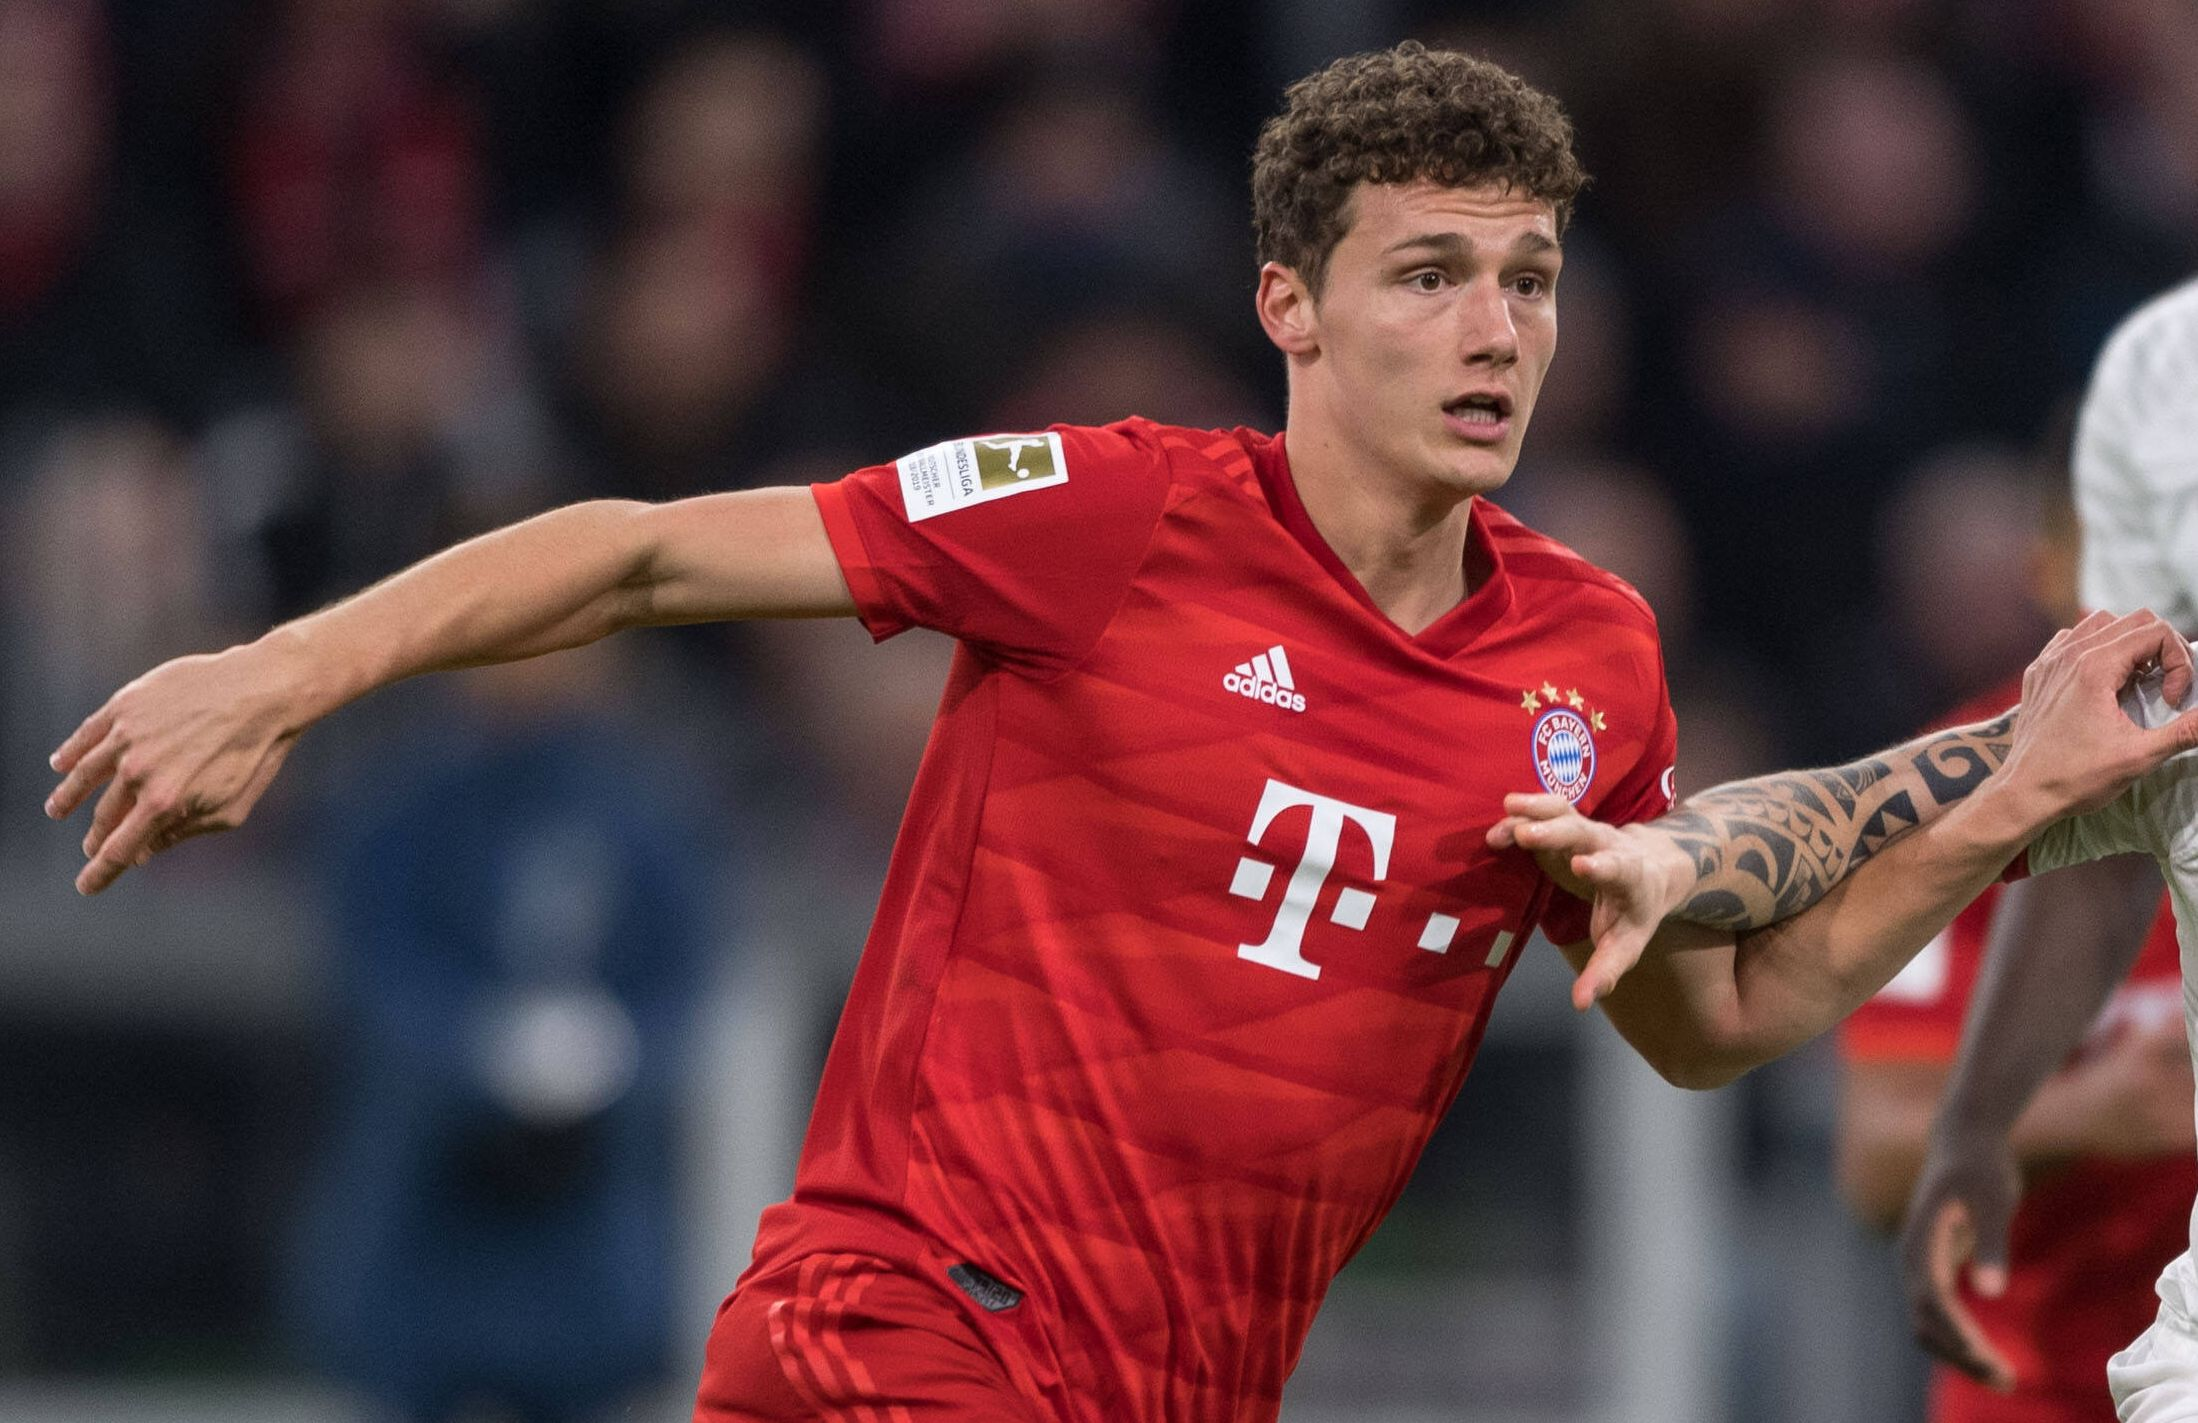 Football - Etranger - Ligue des champions : Bayern Munich-Augsburg en direct